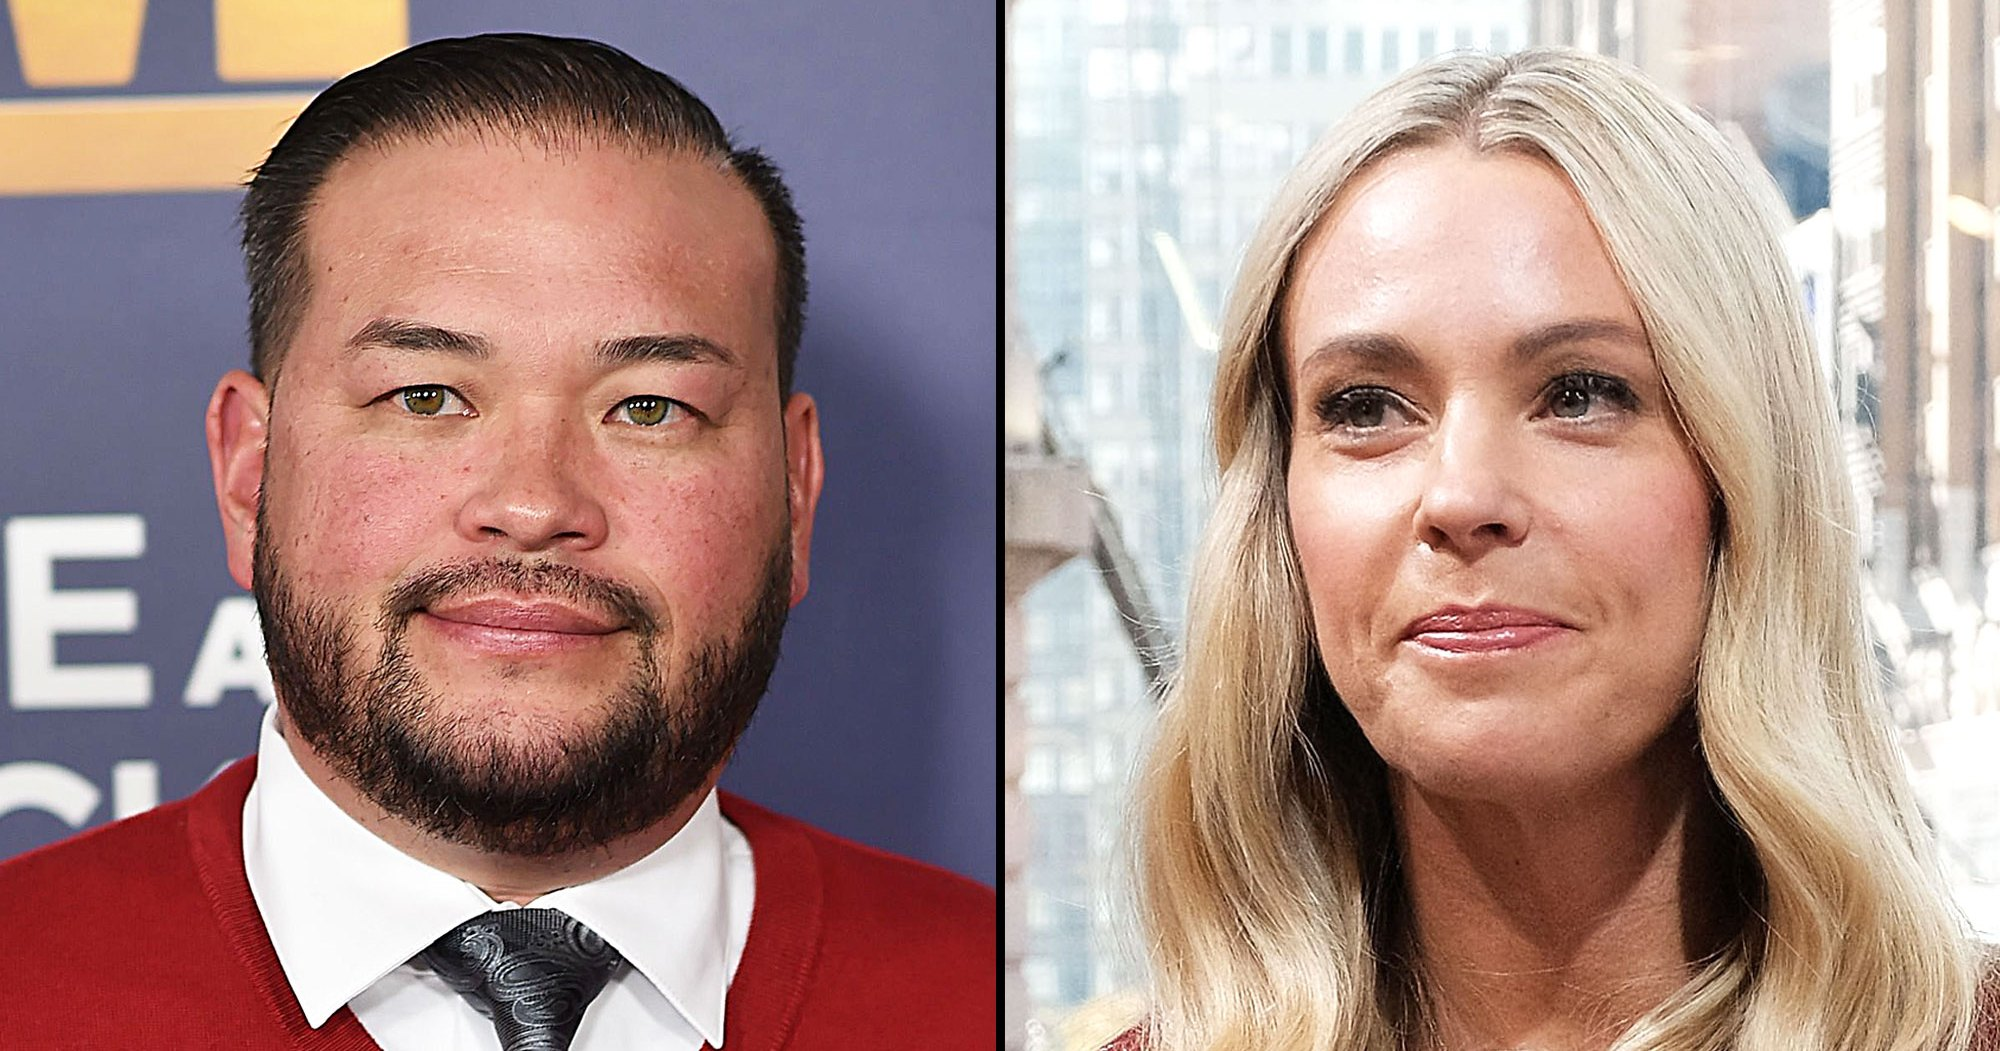 Jon Gosselin Shares His Thoughts on Ex Kate Gosselin Not Showing Up for son Collin's Custody Hearing